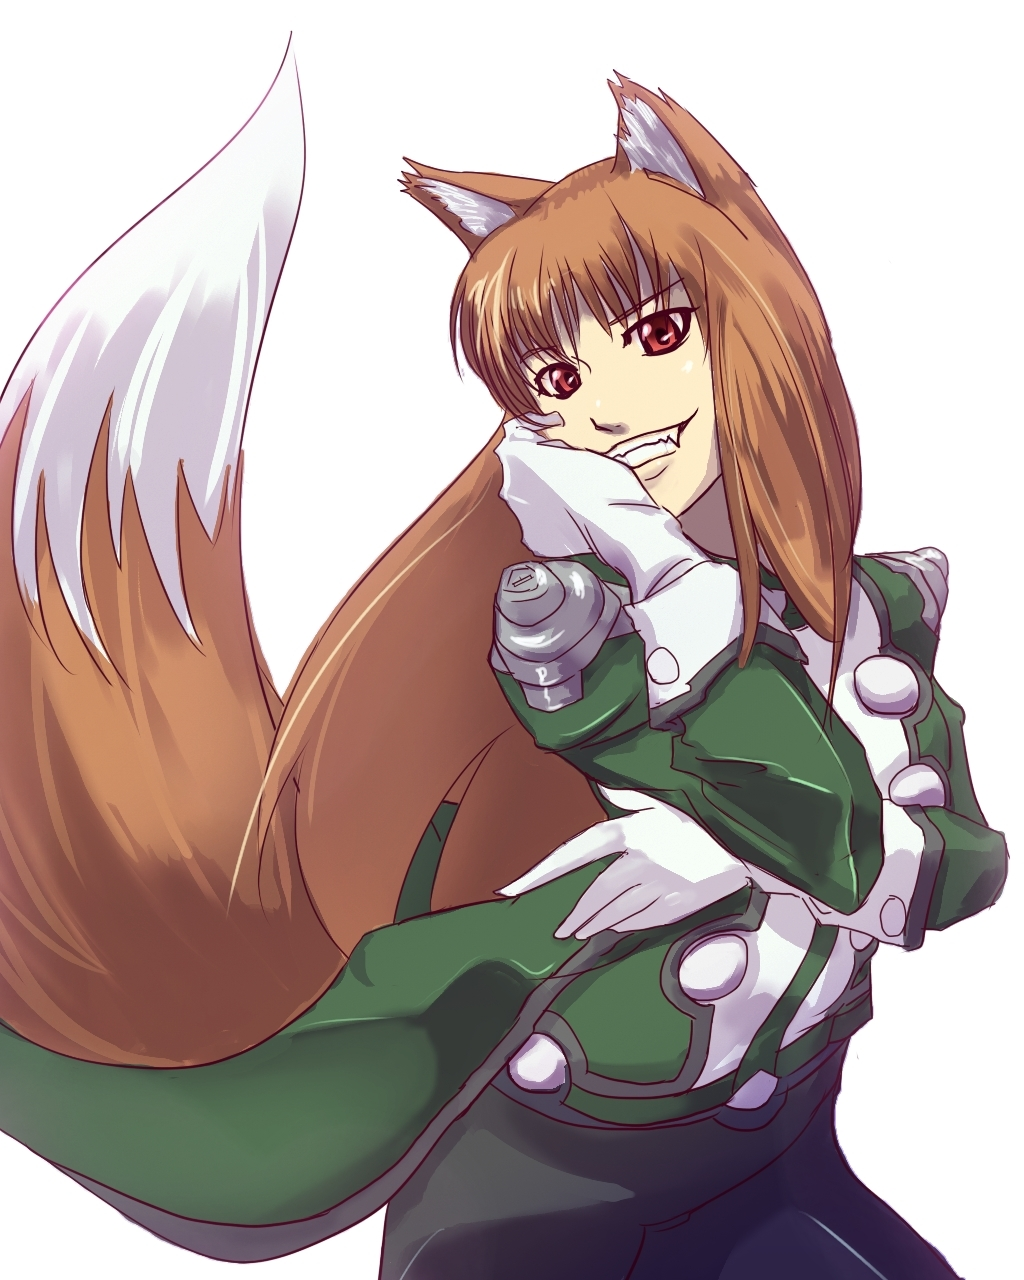 animal_ears brown_hair cosplay fangs gloves grin hand_on_another's_face hand_on_face hand_on_own_face highres holo lobelia_carlini lobelia_carlini_(cosplay) long_hair long_sleeves mochi_suki red_eyes sakura_taisen sakura_taisen_iii simple_background smile solo spice_and_wolf tail uniform wolf_ears wolf_tail